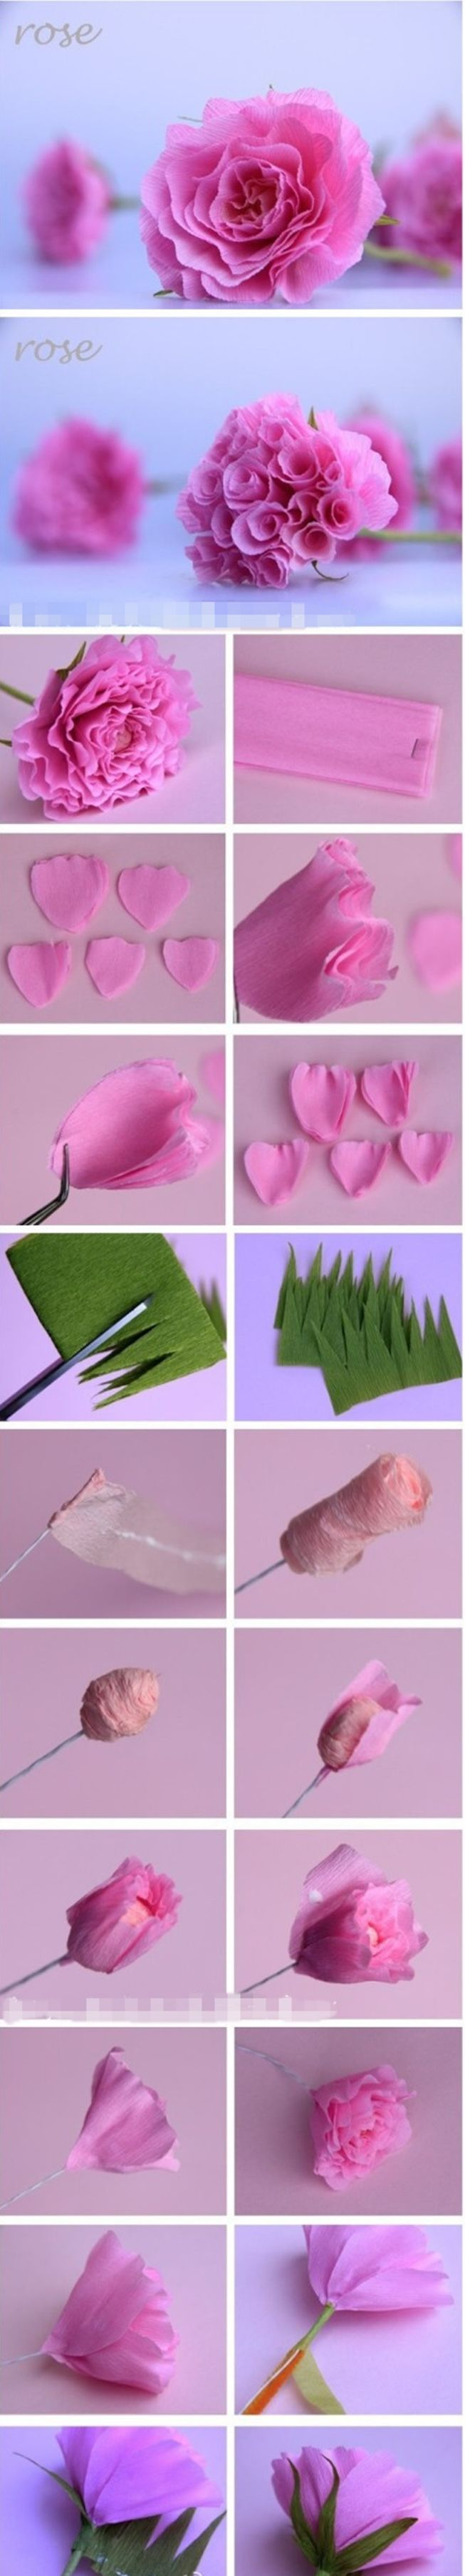 how to make paper flowers using origami